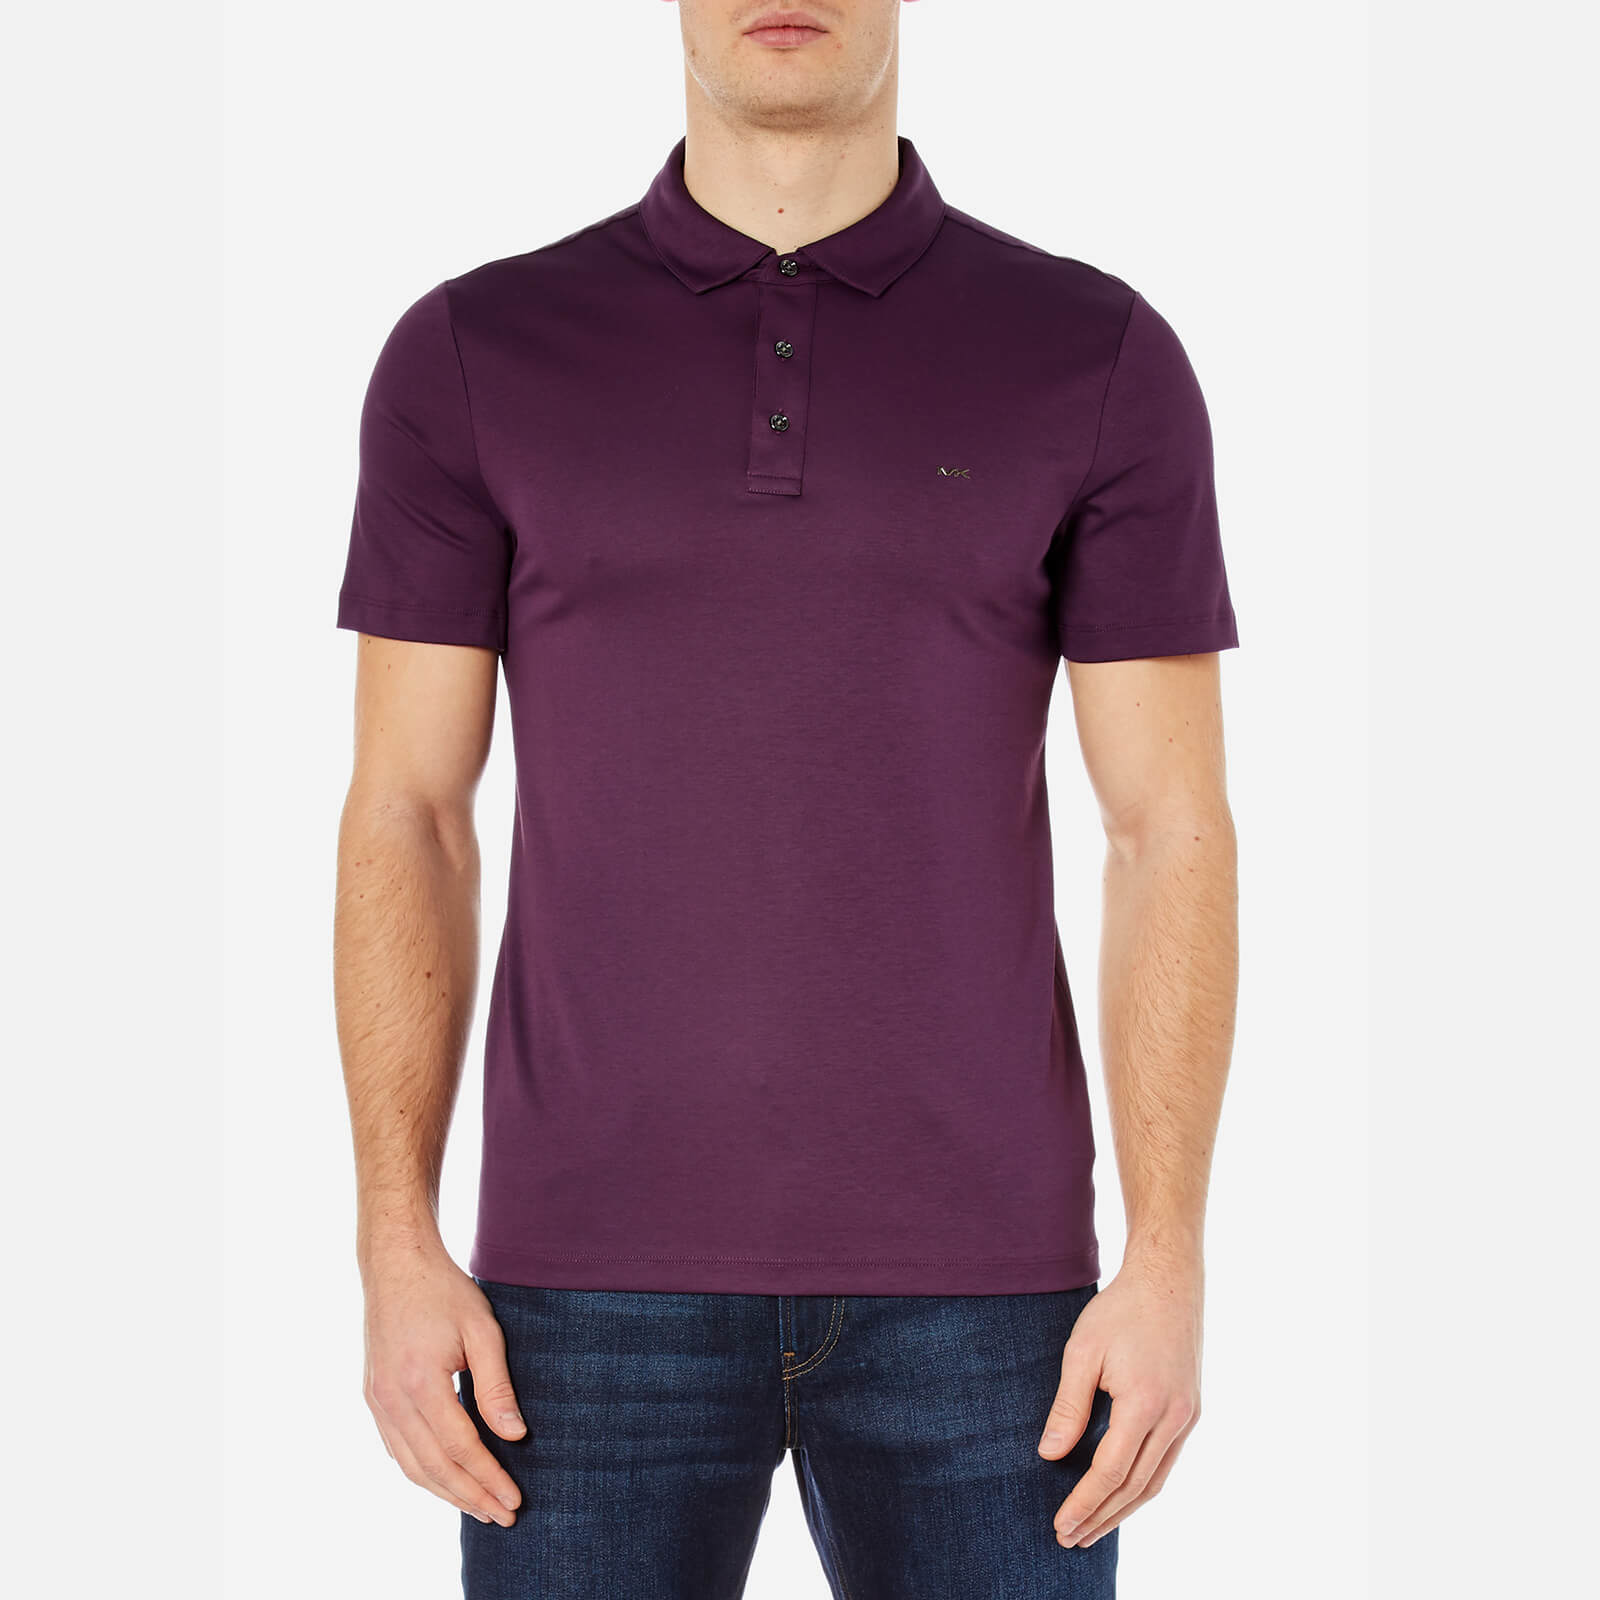 8932cff0be7ae Michael Kors Men s Sleek MK Polo Shirt - Blackberry - Free UK Delivery over  £50